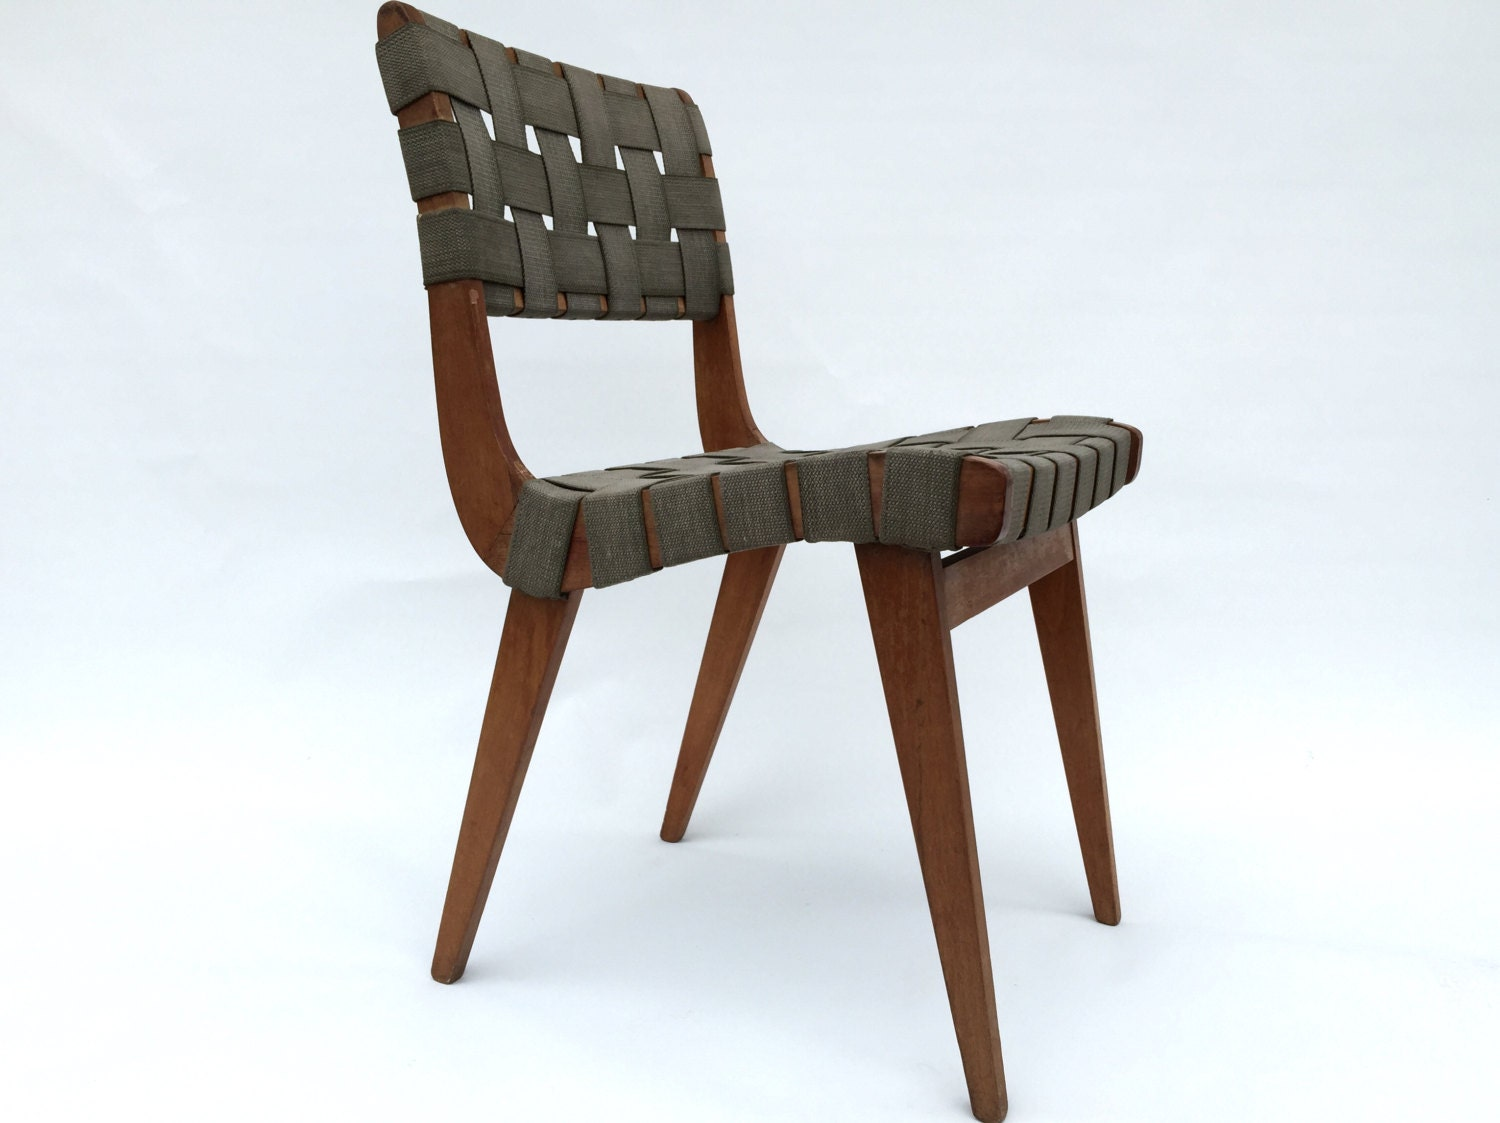 Jens Risom Side Chair Jens Risom Chair Gallery Image Tarifrr